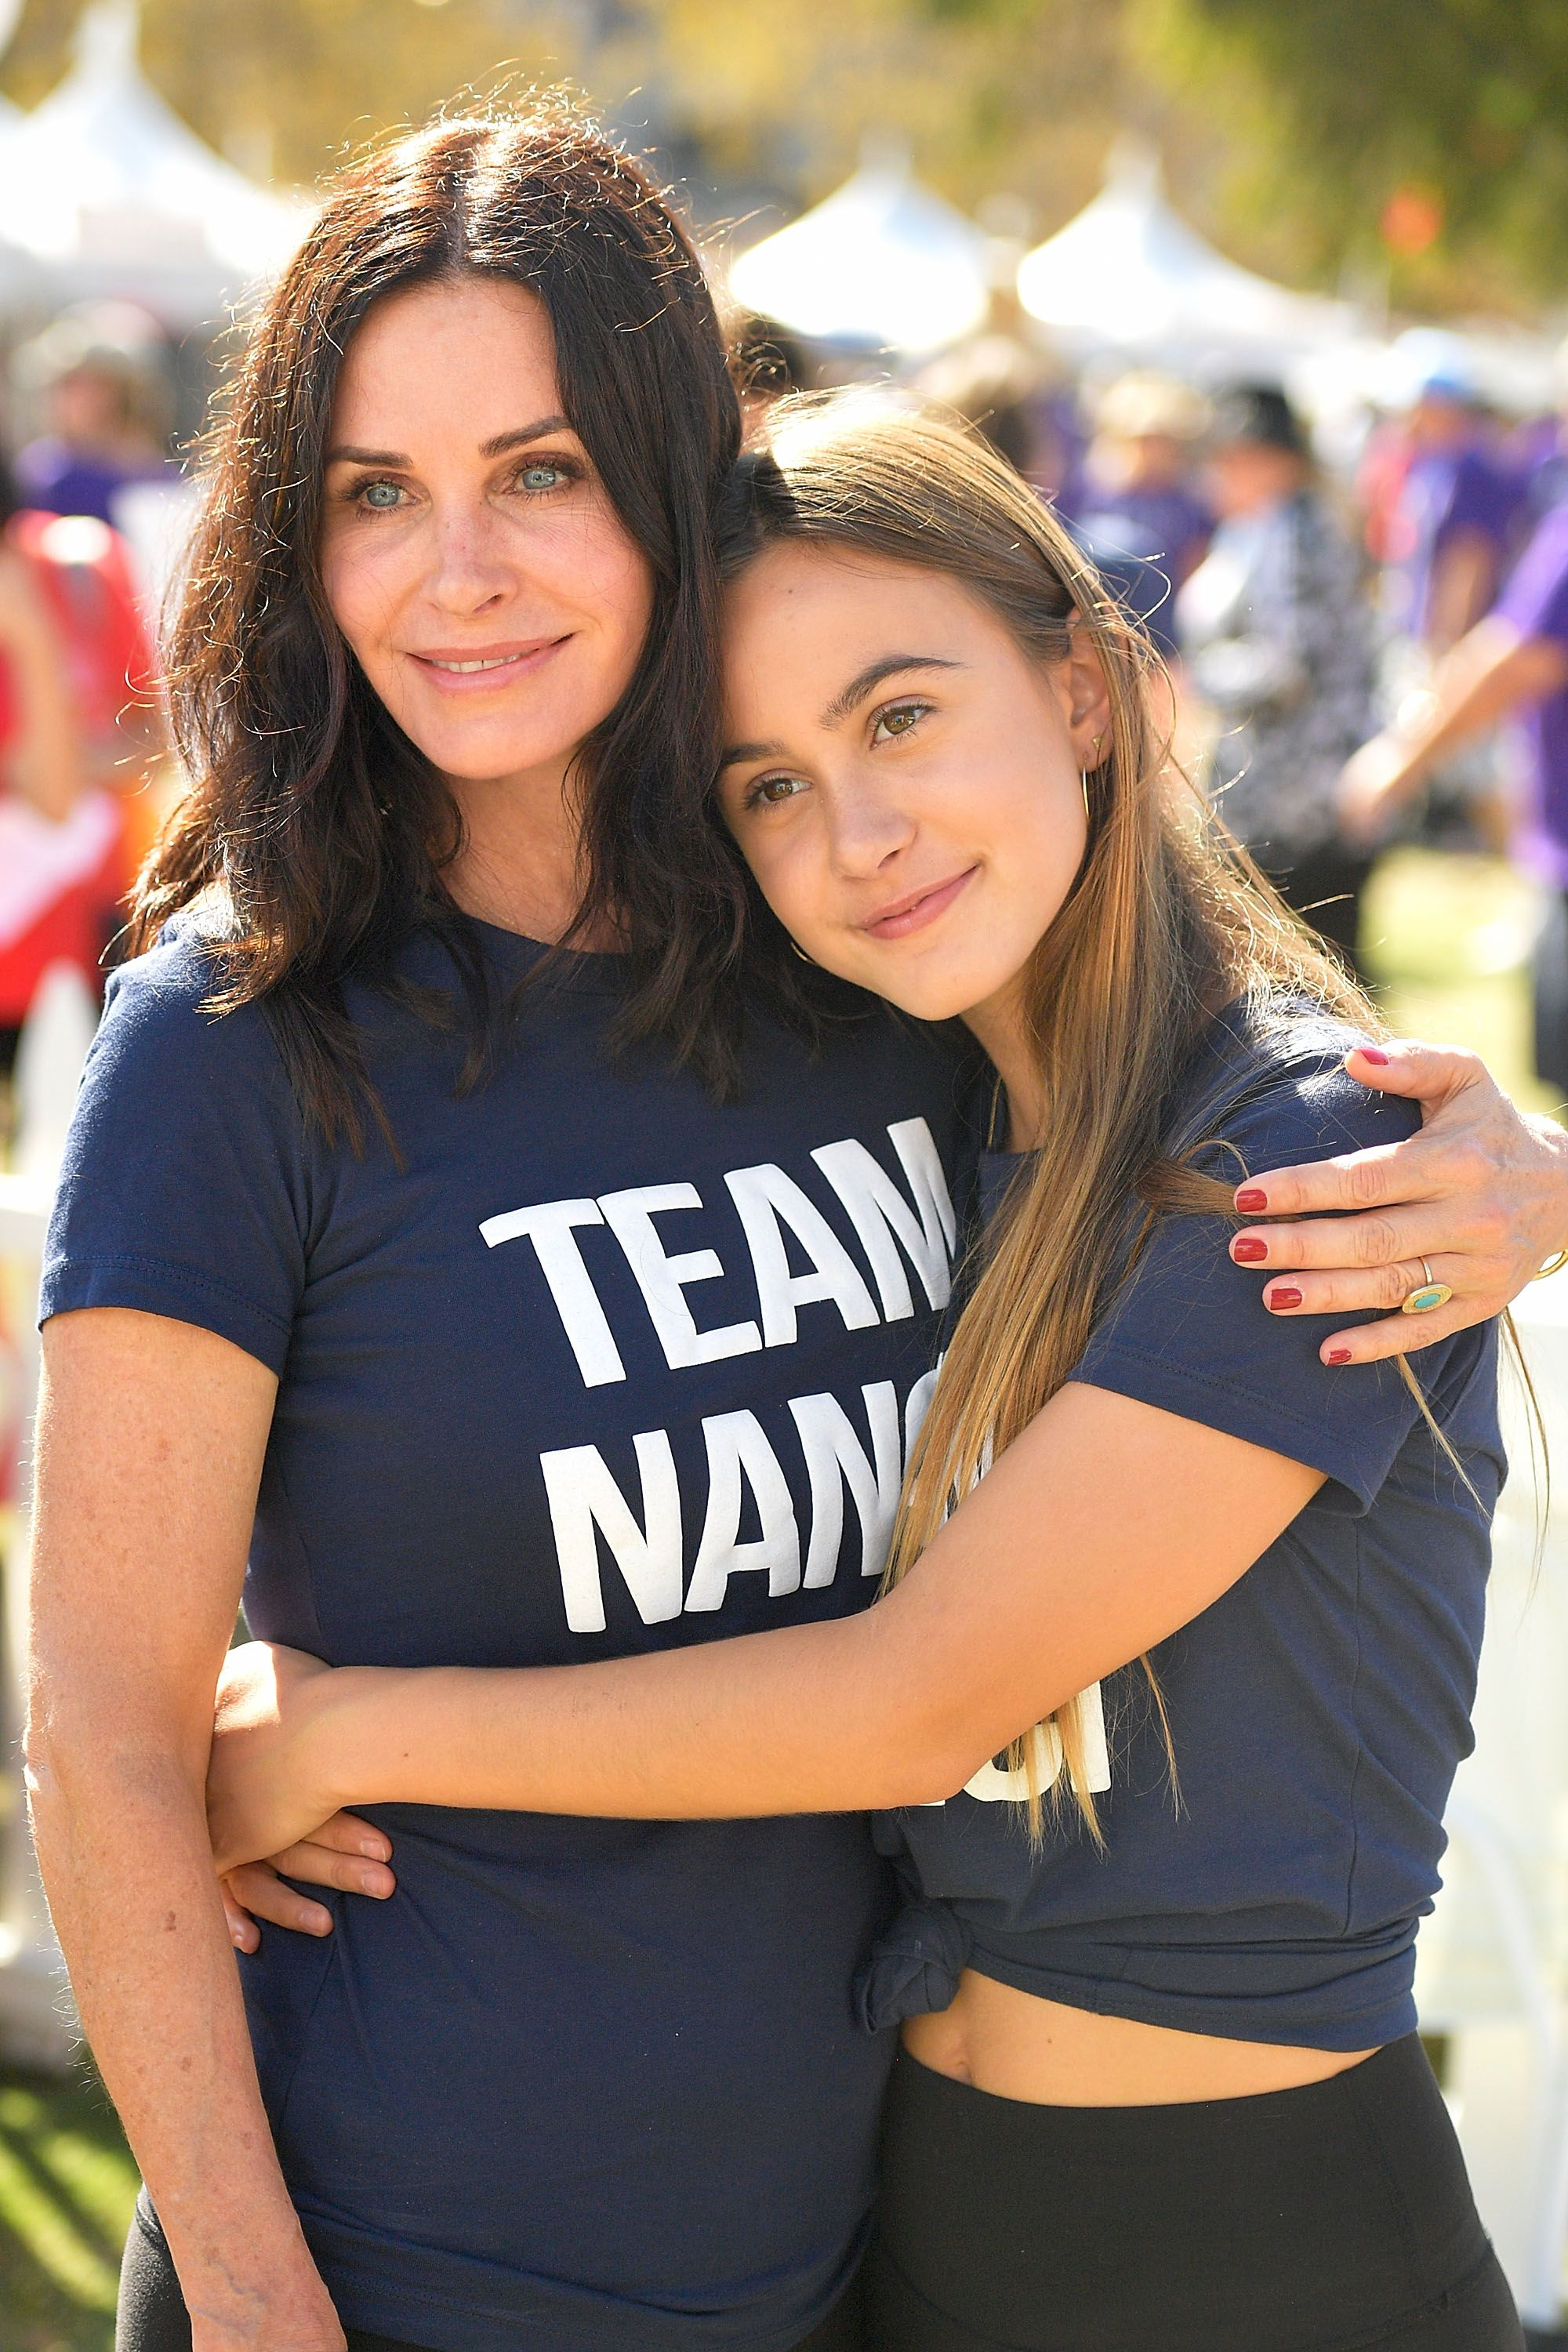 Courteney Cox and daughter Coco Arquette at the15th Annual LA County Walk to Defeat ALS in 2017 in Los Angeles | Source: Getty Images